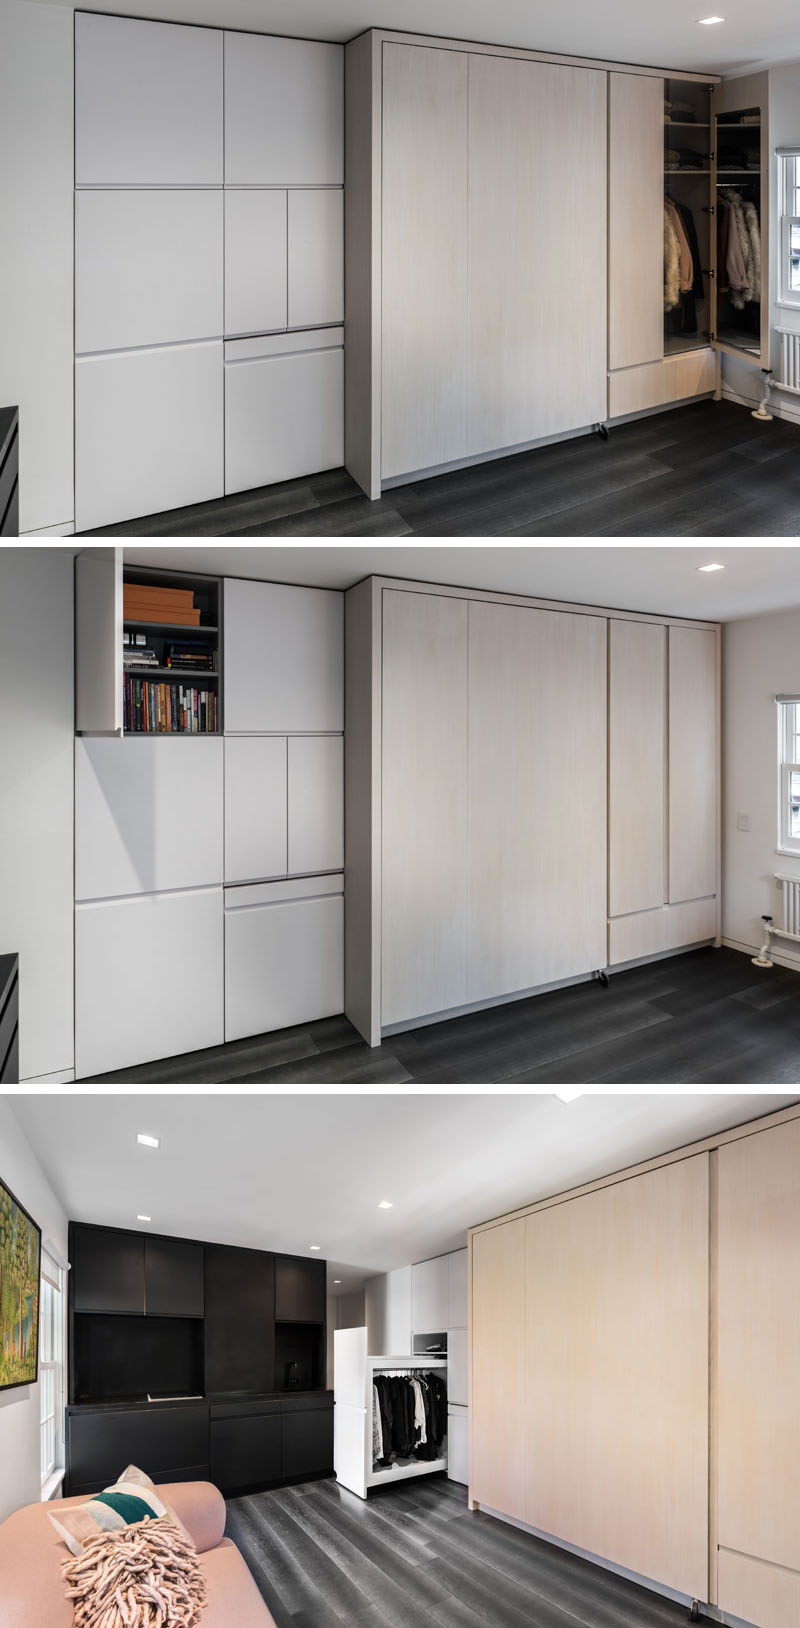 Image Result For West Village Micro Apartment Turns Into A Multi Functional Home